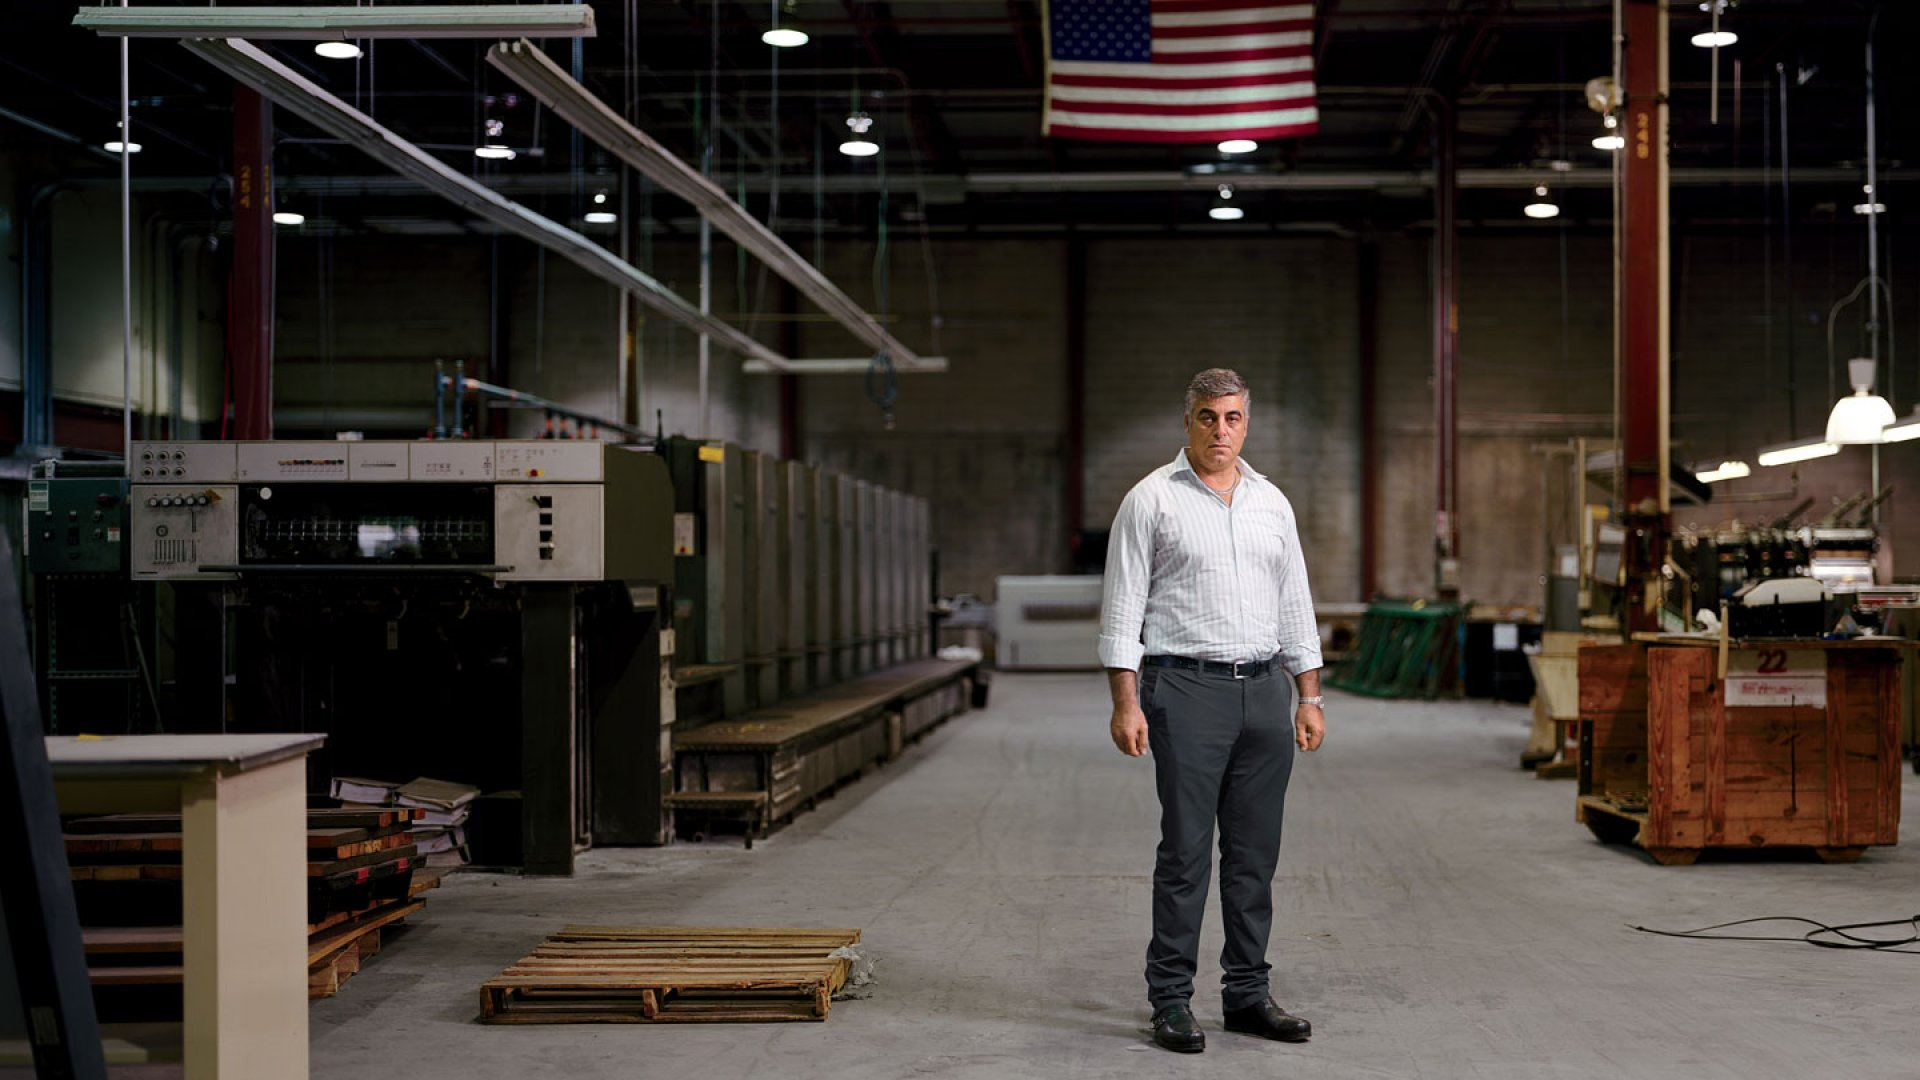 <b>The Printer:</b> In 2008, David Moyal's bank agreed to provide financing for a $3.8 million state-of-the-art printing press. A year later, after the press had been assembled and shipped, the bank pulled out.